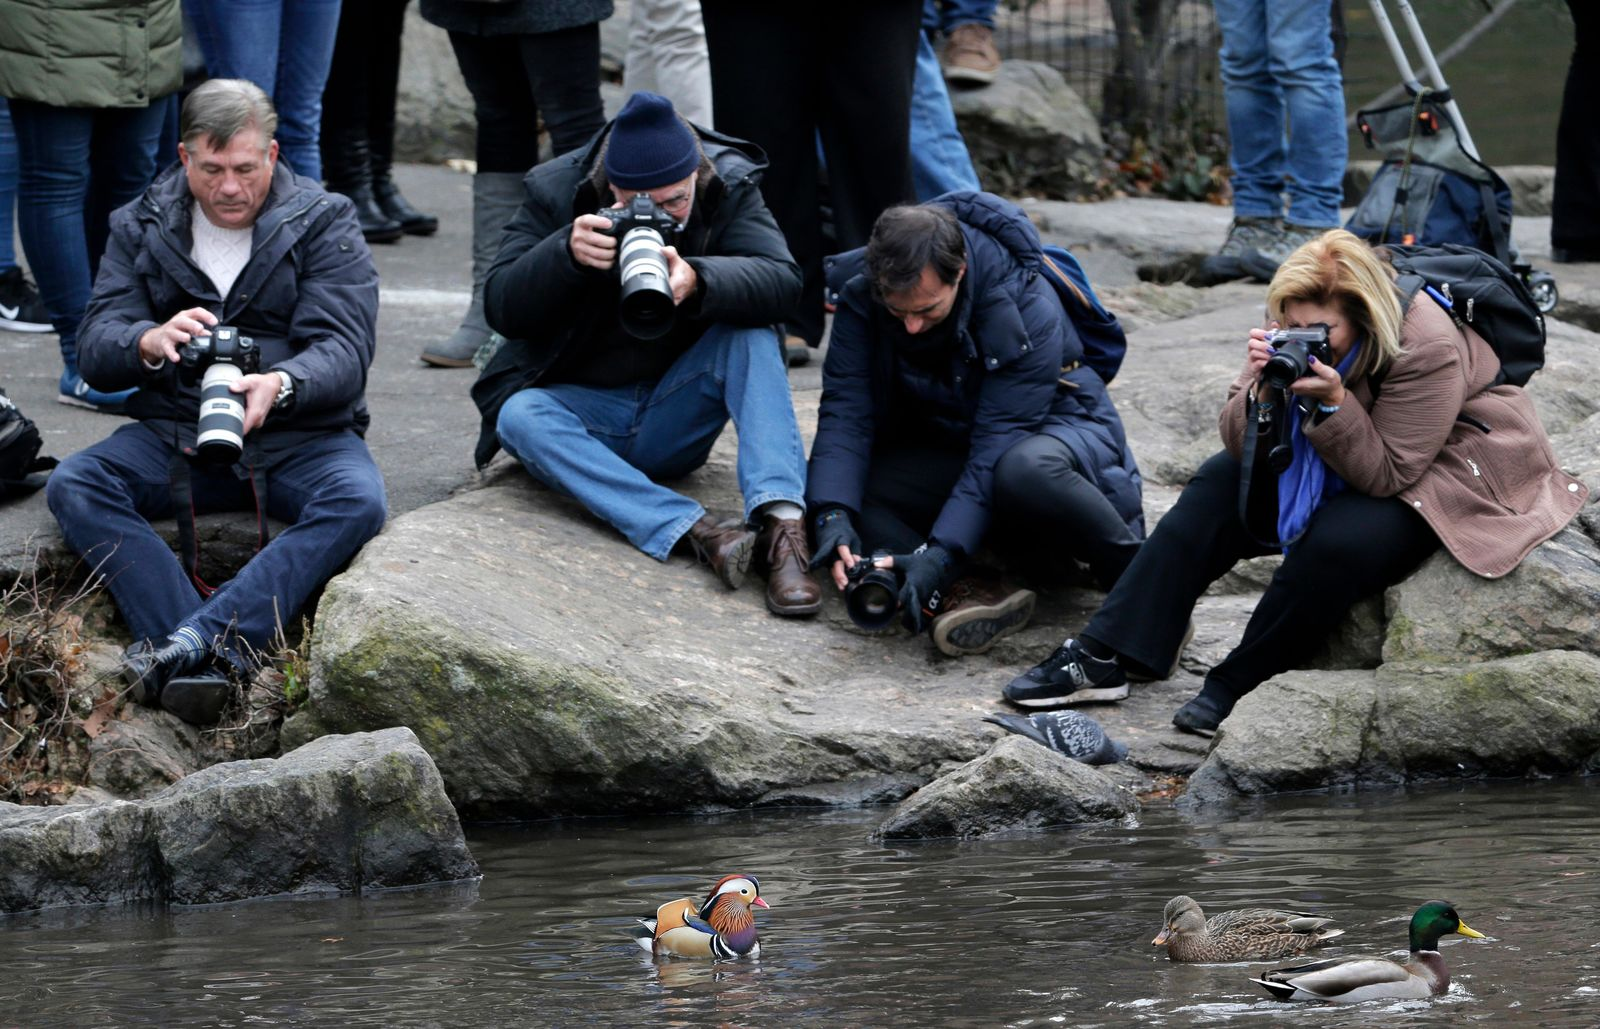 People try to get pictures of a Mandarin duck, center, in Central Park in New York, Wednesday, Dec. 5, 2018. In the weeks since it appeared in Central Park, the duck has become a celebrity. (AP Photo/Seth Wenig)